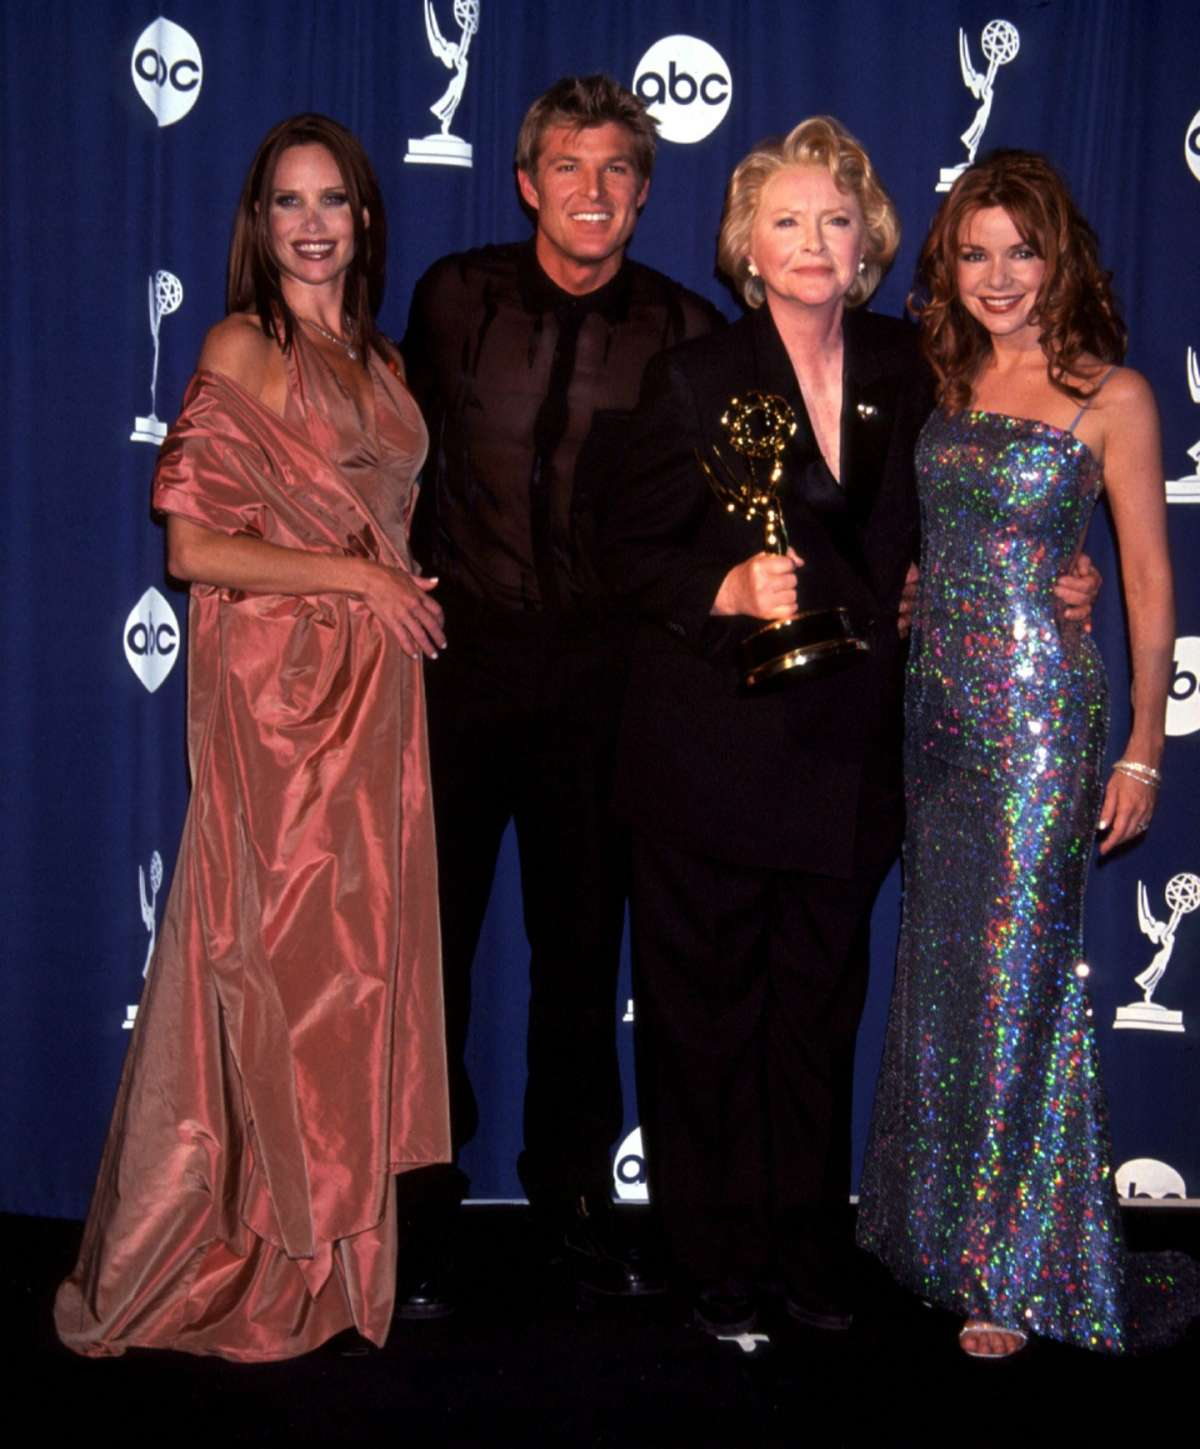 Sarah Buxton,Winsor Harmon, Susan Flannery e Bobbie Eakes in posa sul red carpet